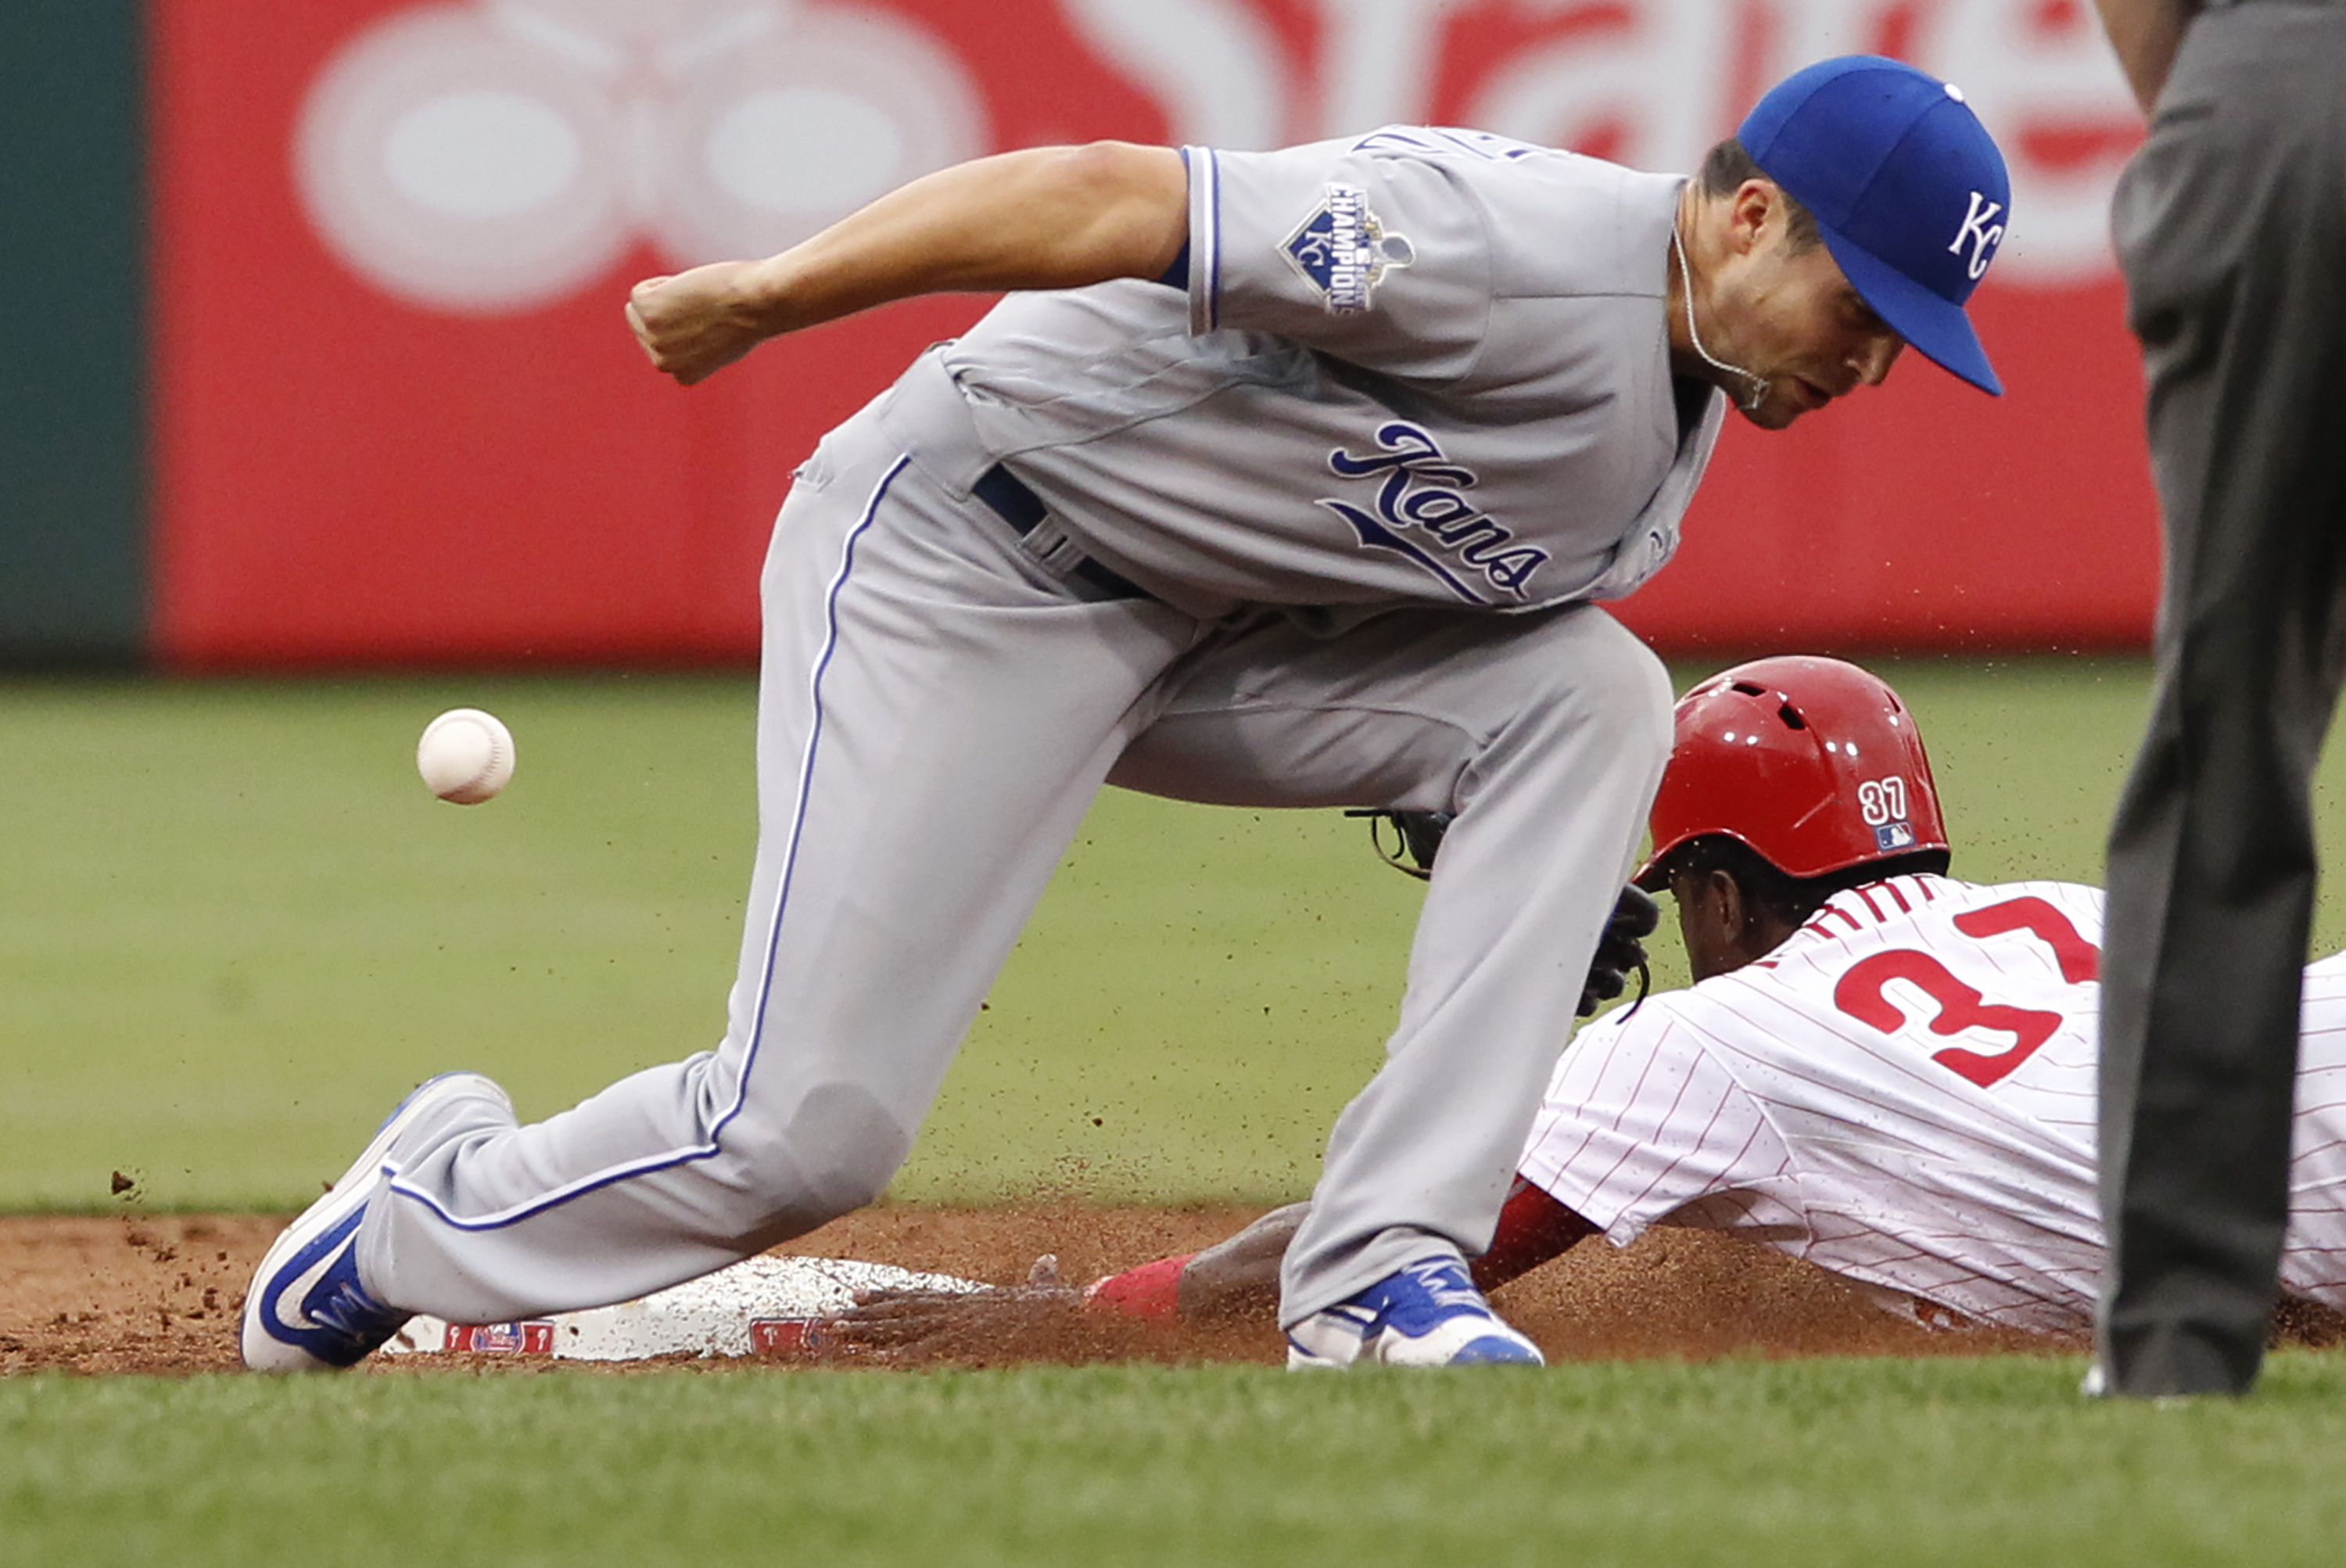 Royals utilityman Whit Merrifield, seen here in a 2016 game at Citizens Bank Park, could be traded if he doesn´t agree to a contract extension.